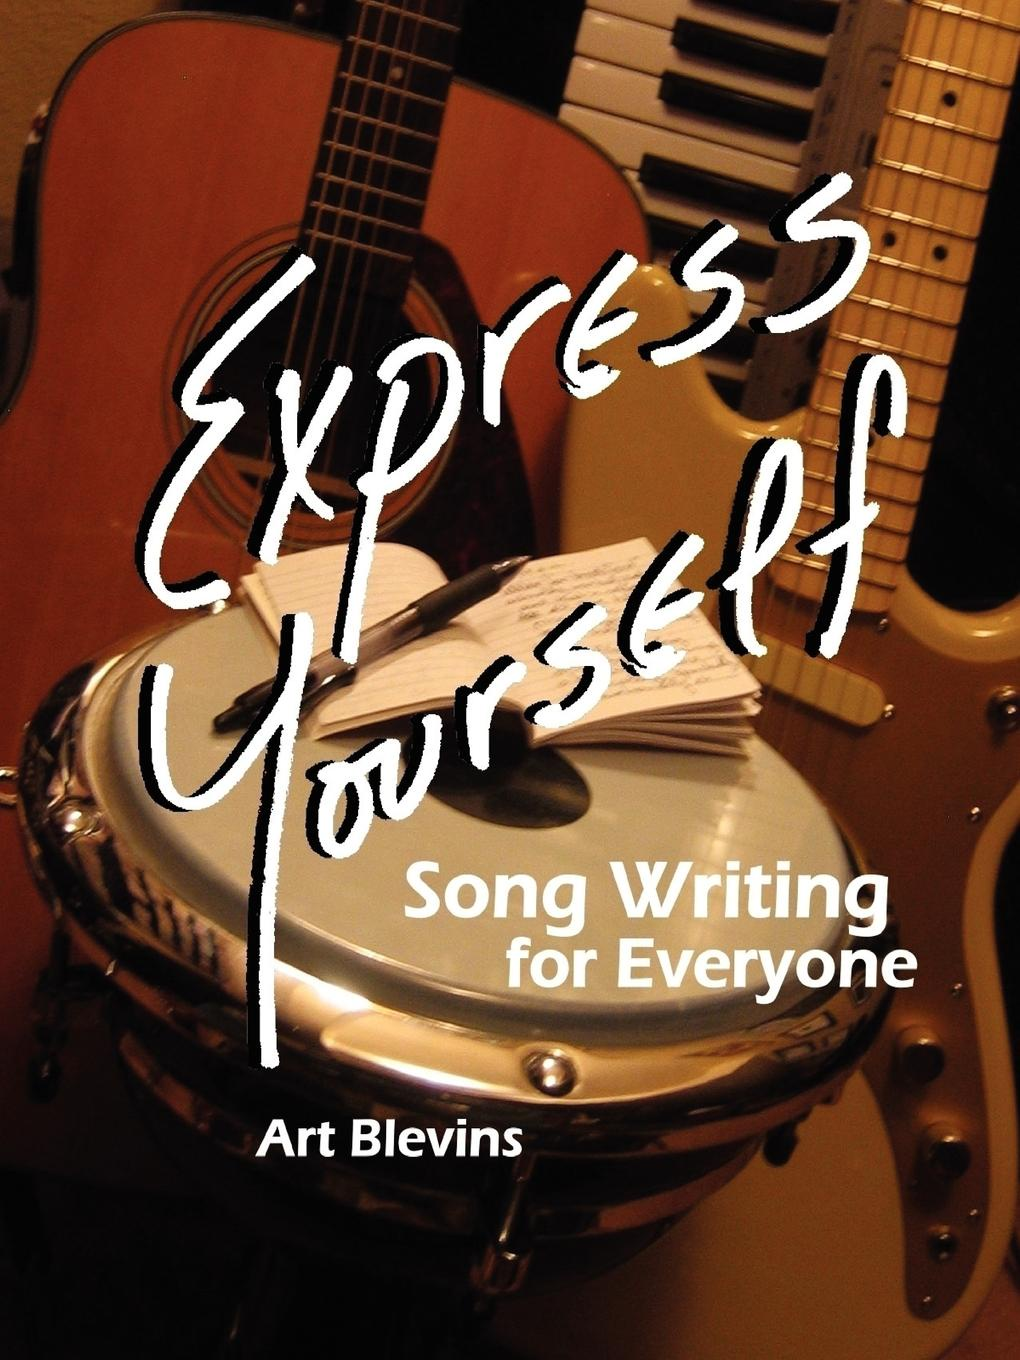 Art Blevins Express Yourself. Song Writing for Everyone. tim murphey music and song